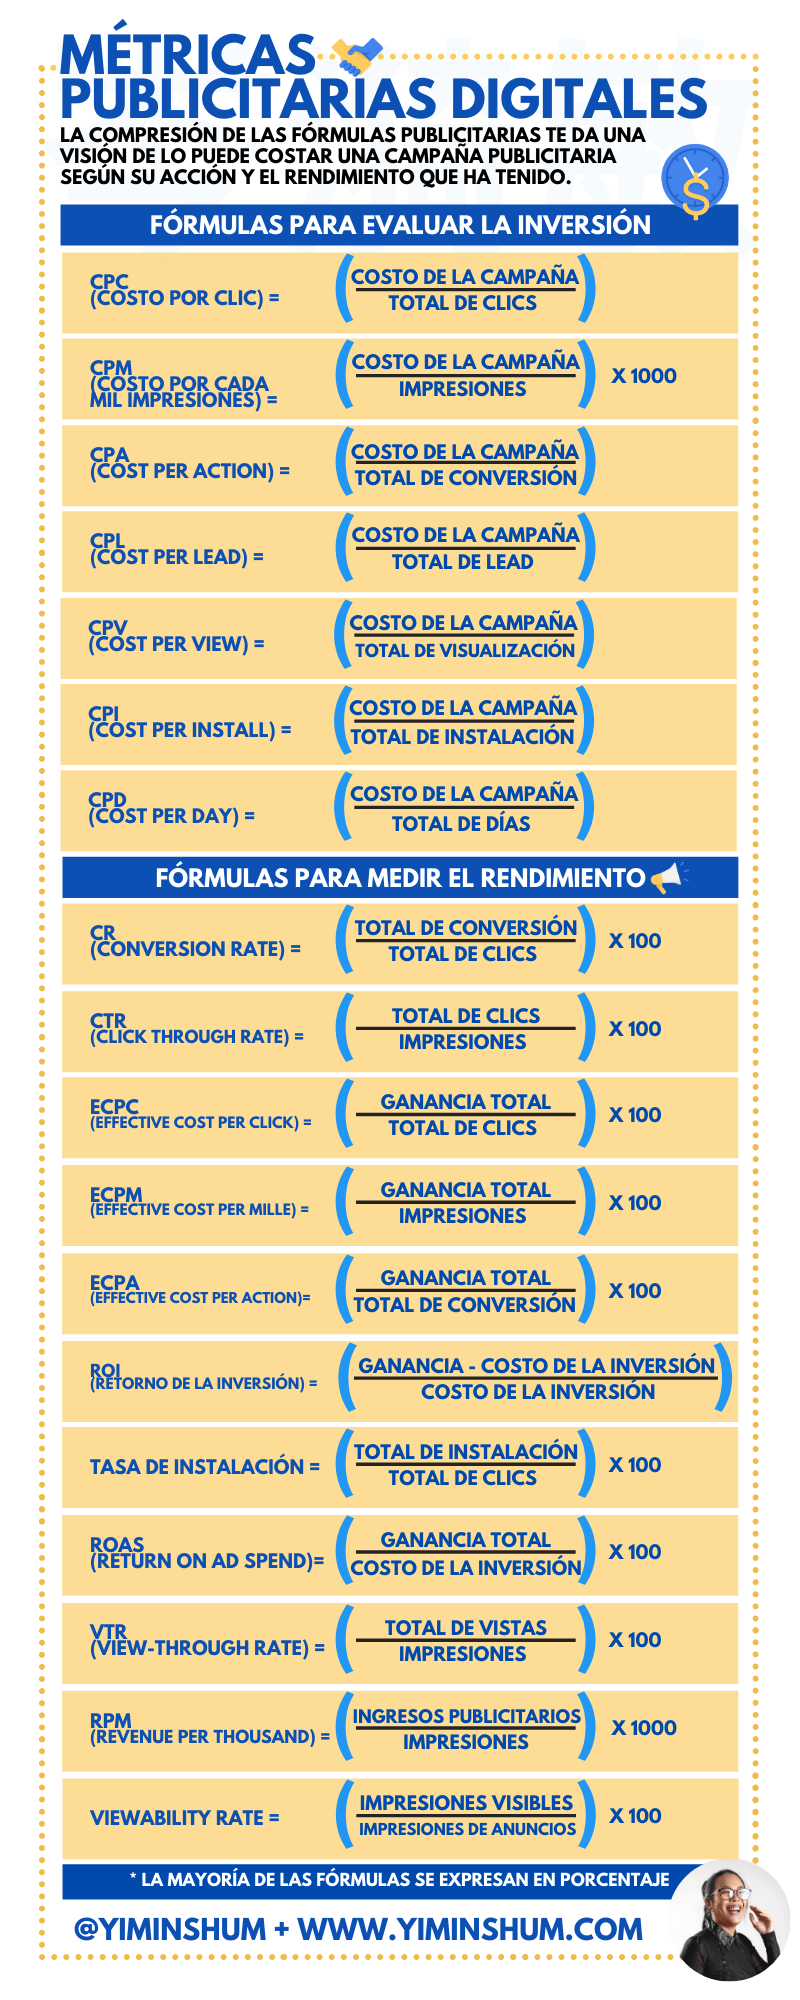 Métricas para publicidad digital #infografia #infographic #marketing